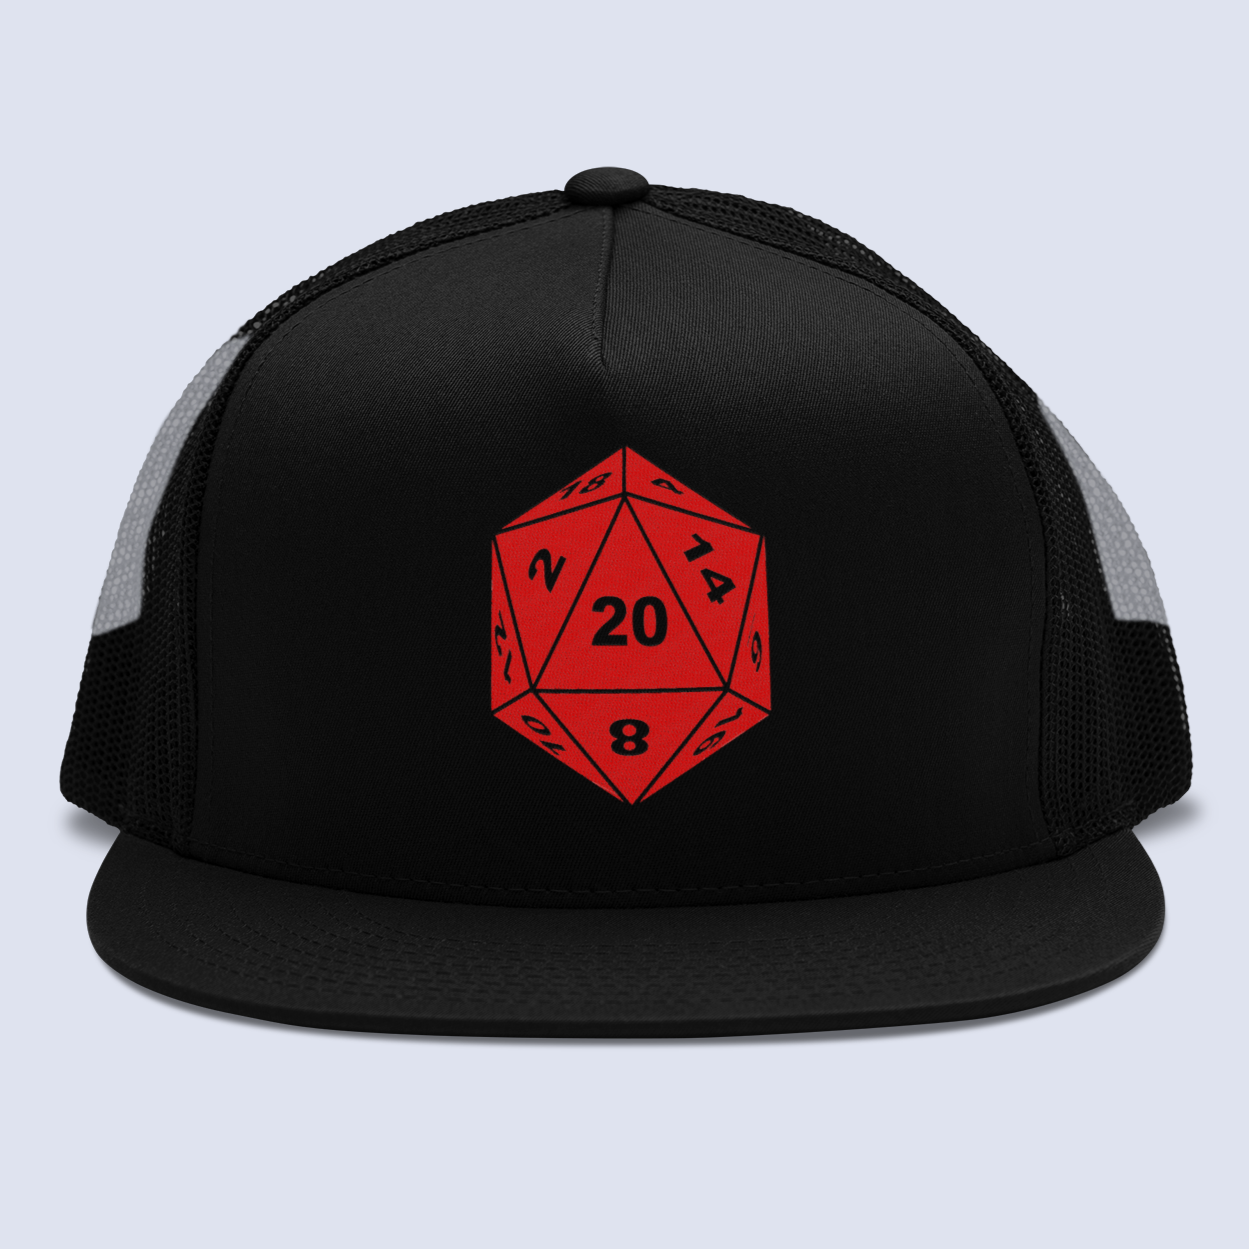 D20 Dragons & Dungeons Flat Bill Trucker Hat